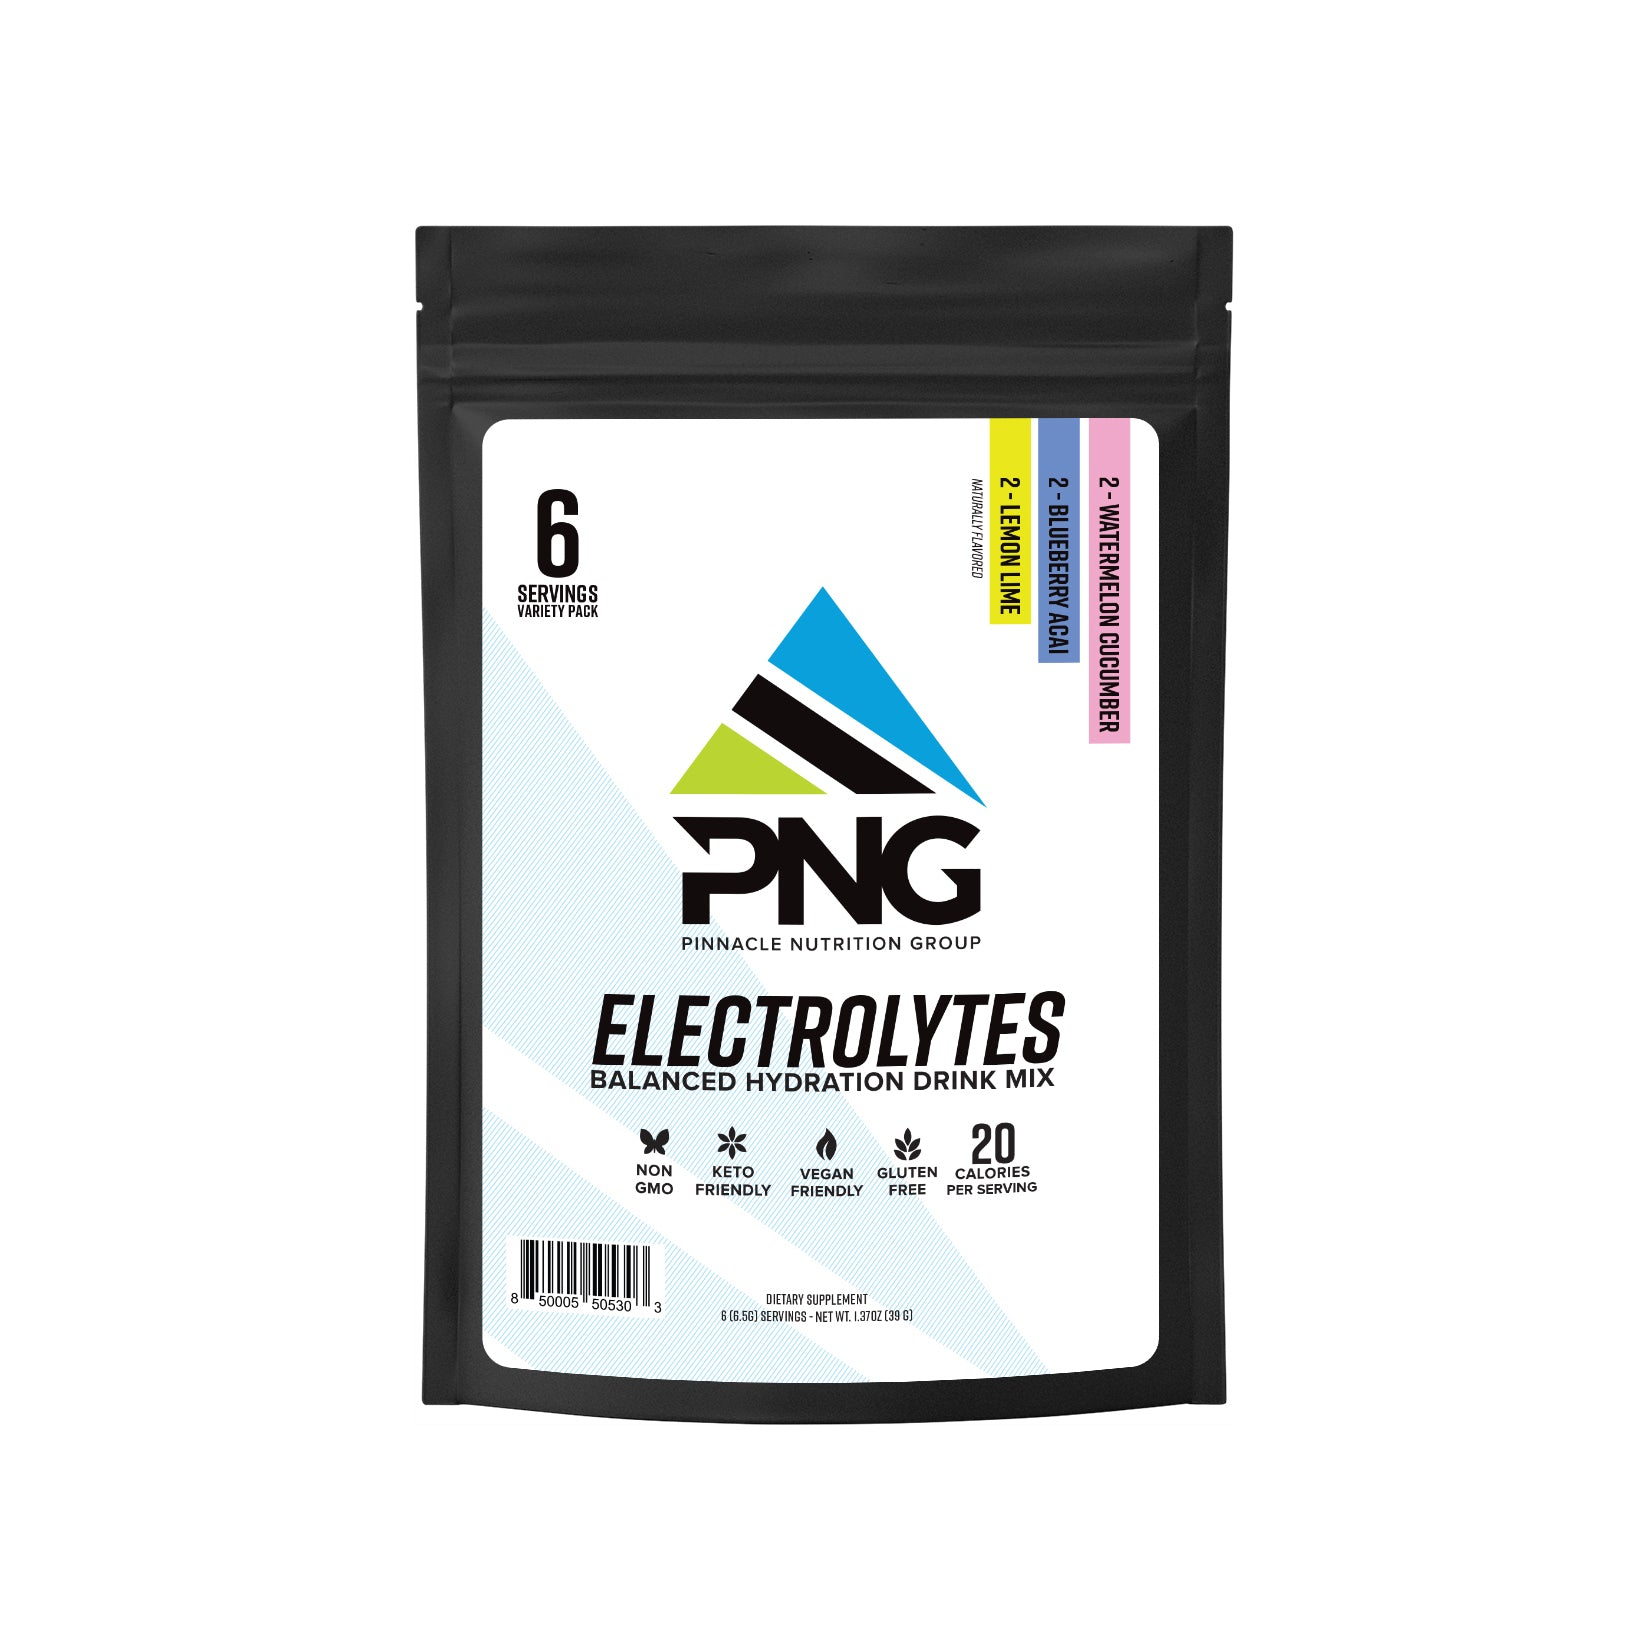 Electrolytes Sampler (6 Servings) - Pinnacle Nutrition Group